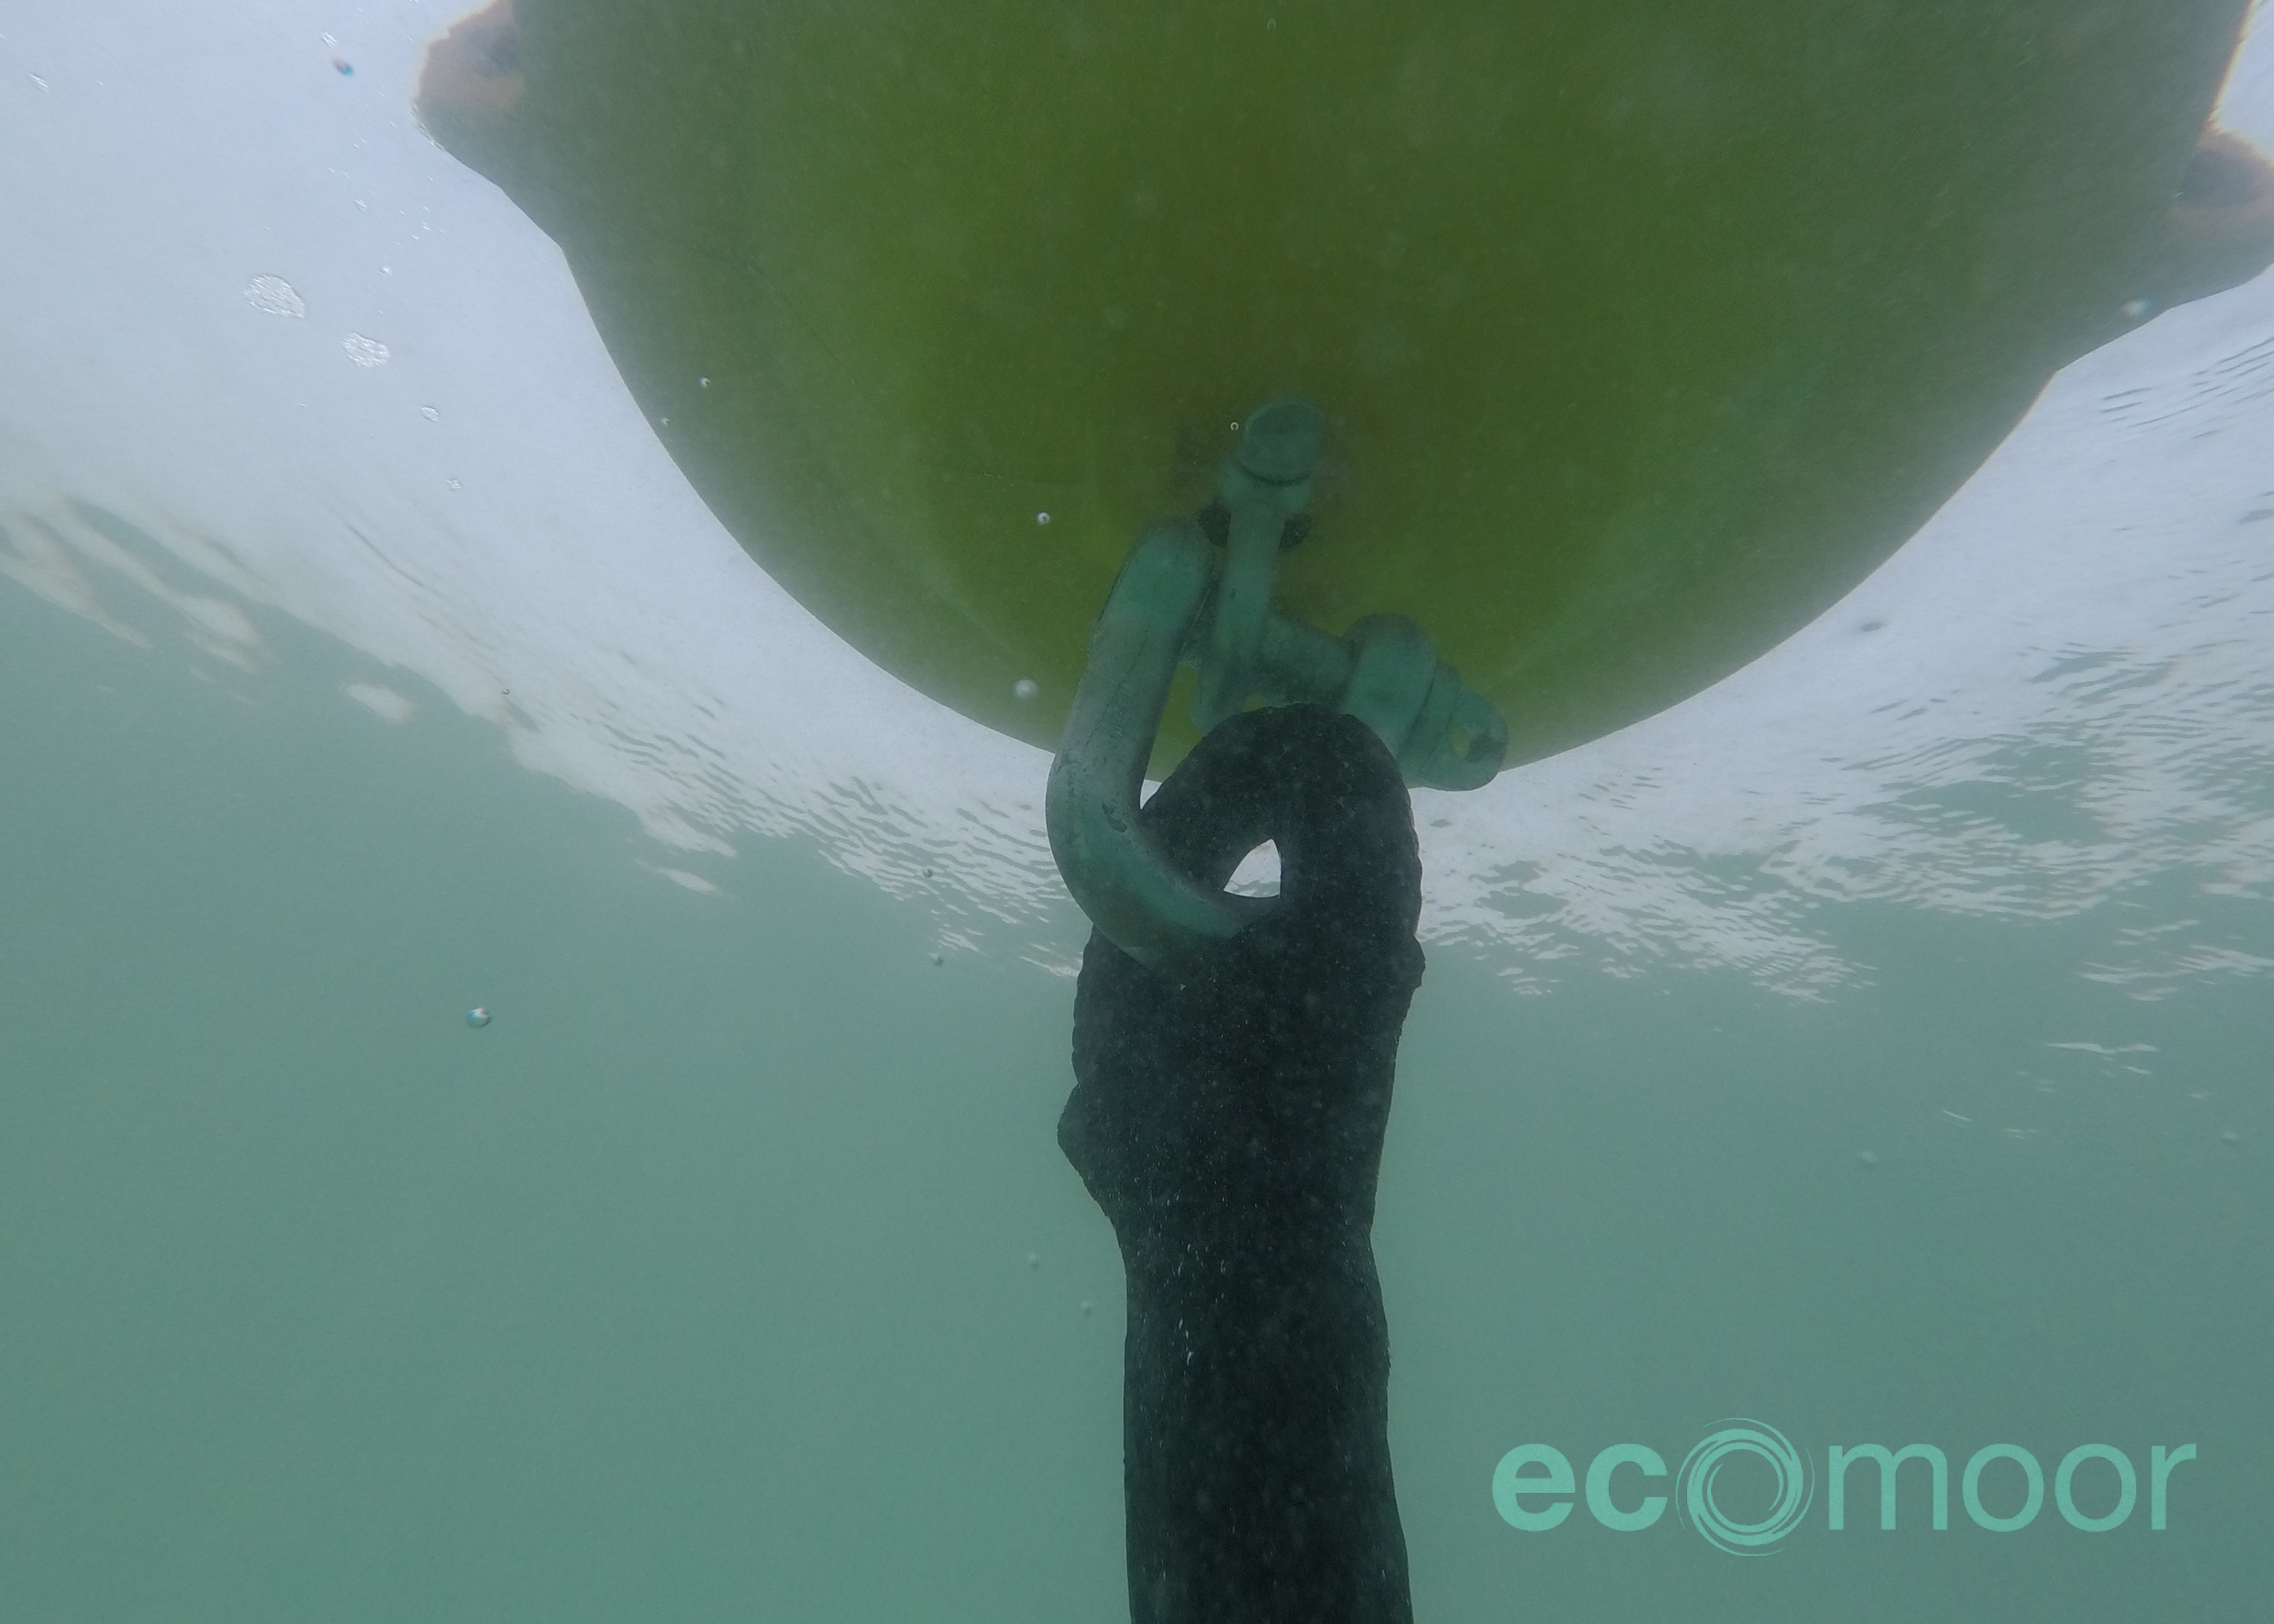 Ecomoor Synthetic Mooring